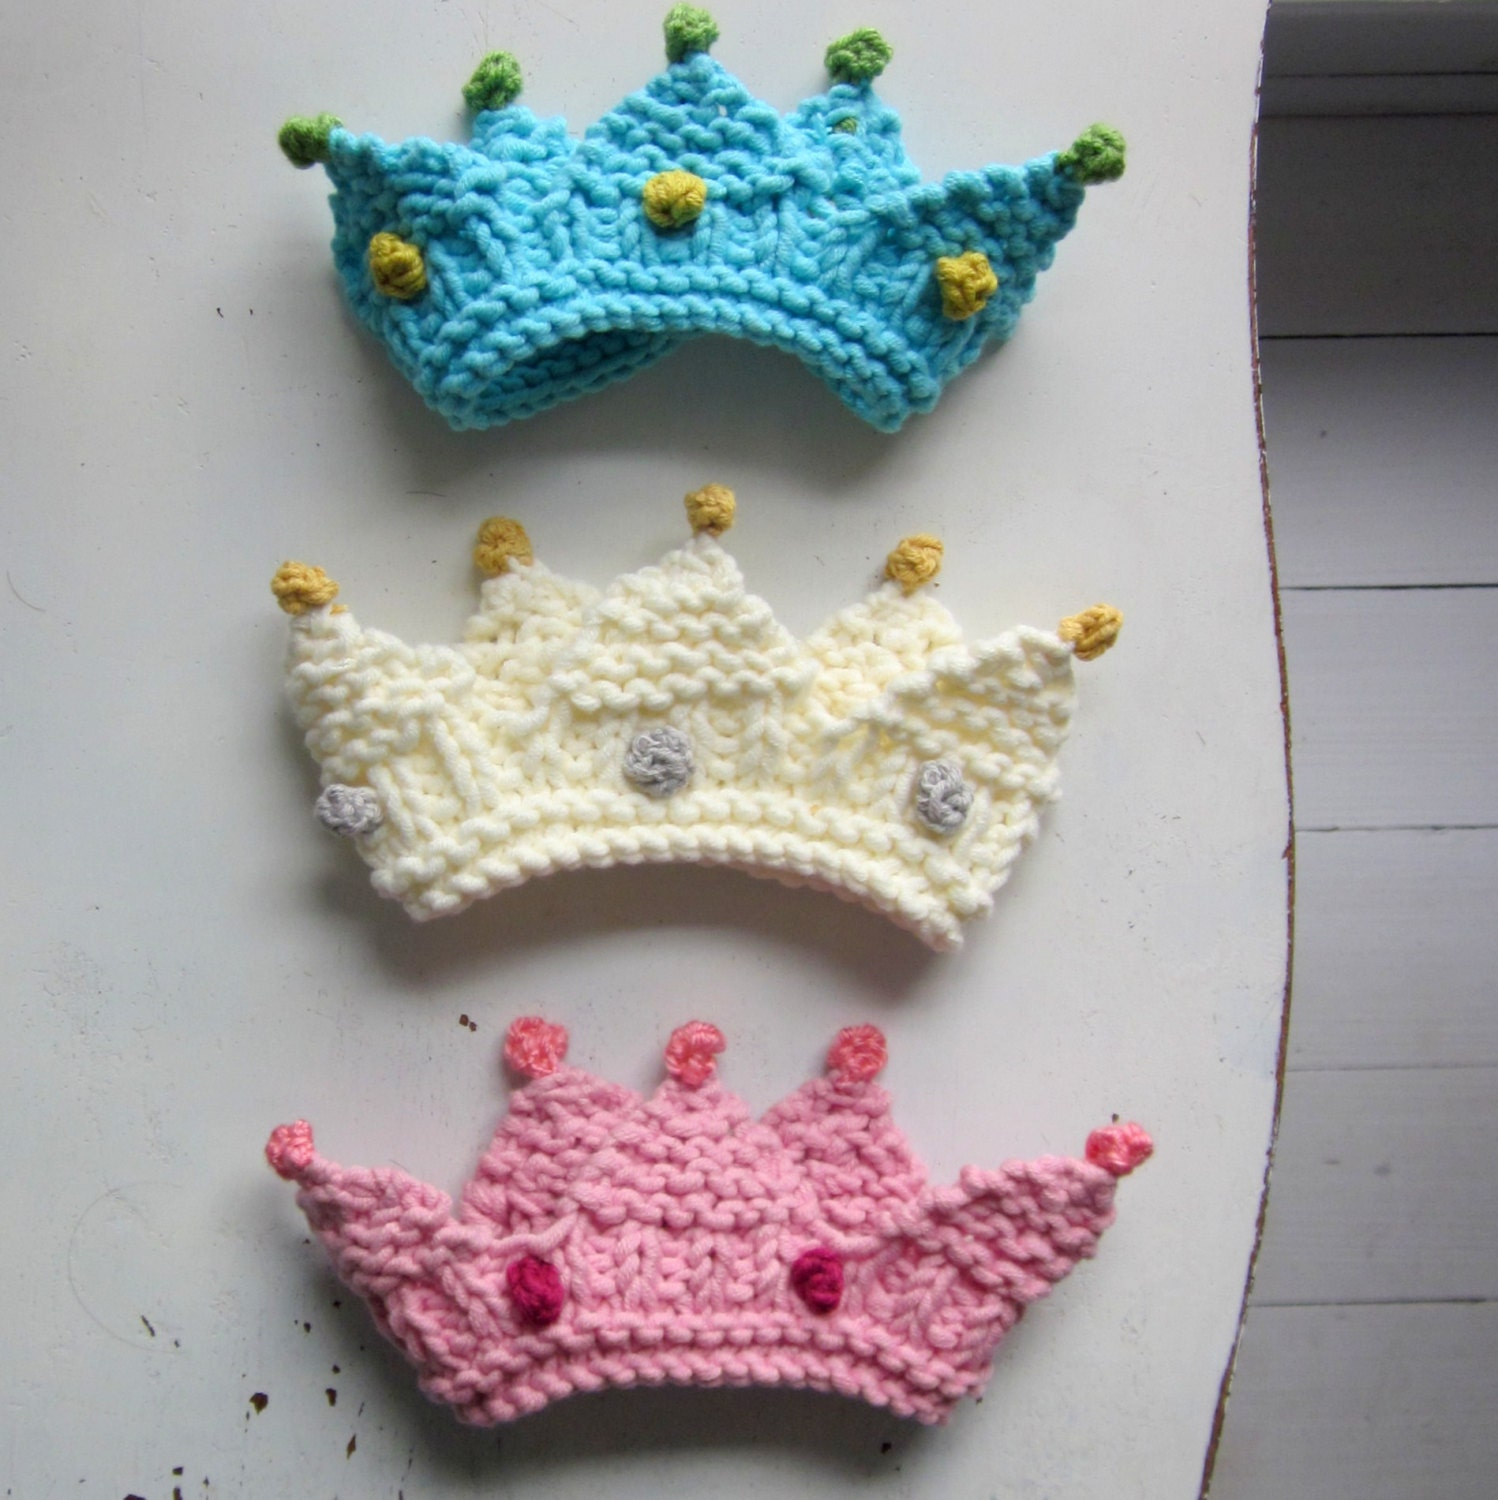 Knitting Ideas For Babies : Royal baby crown knitting pattern photo prop bulky yarn